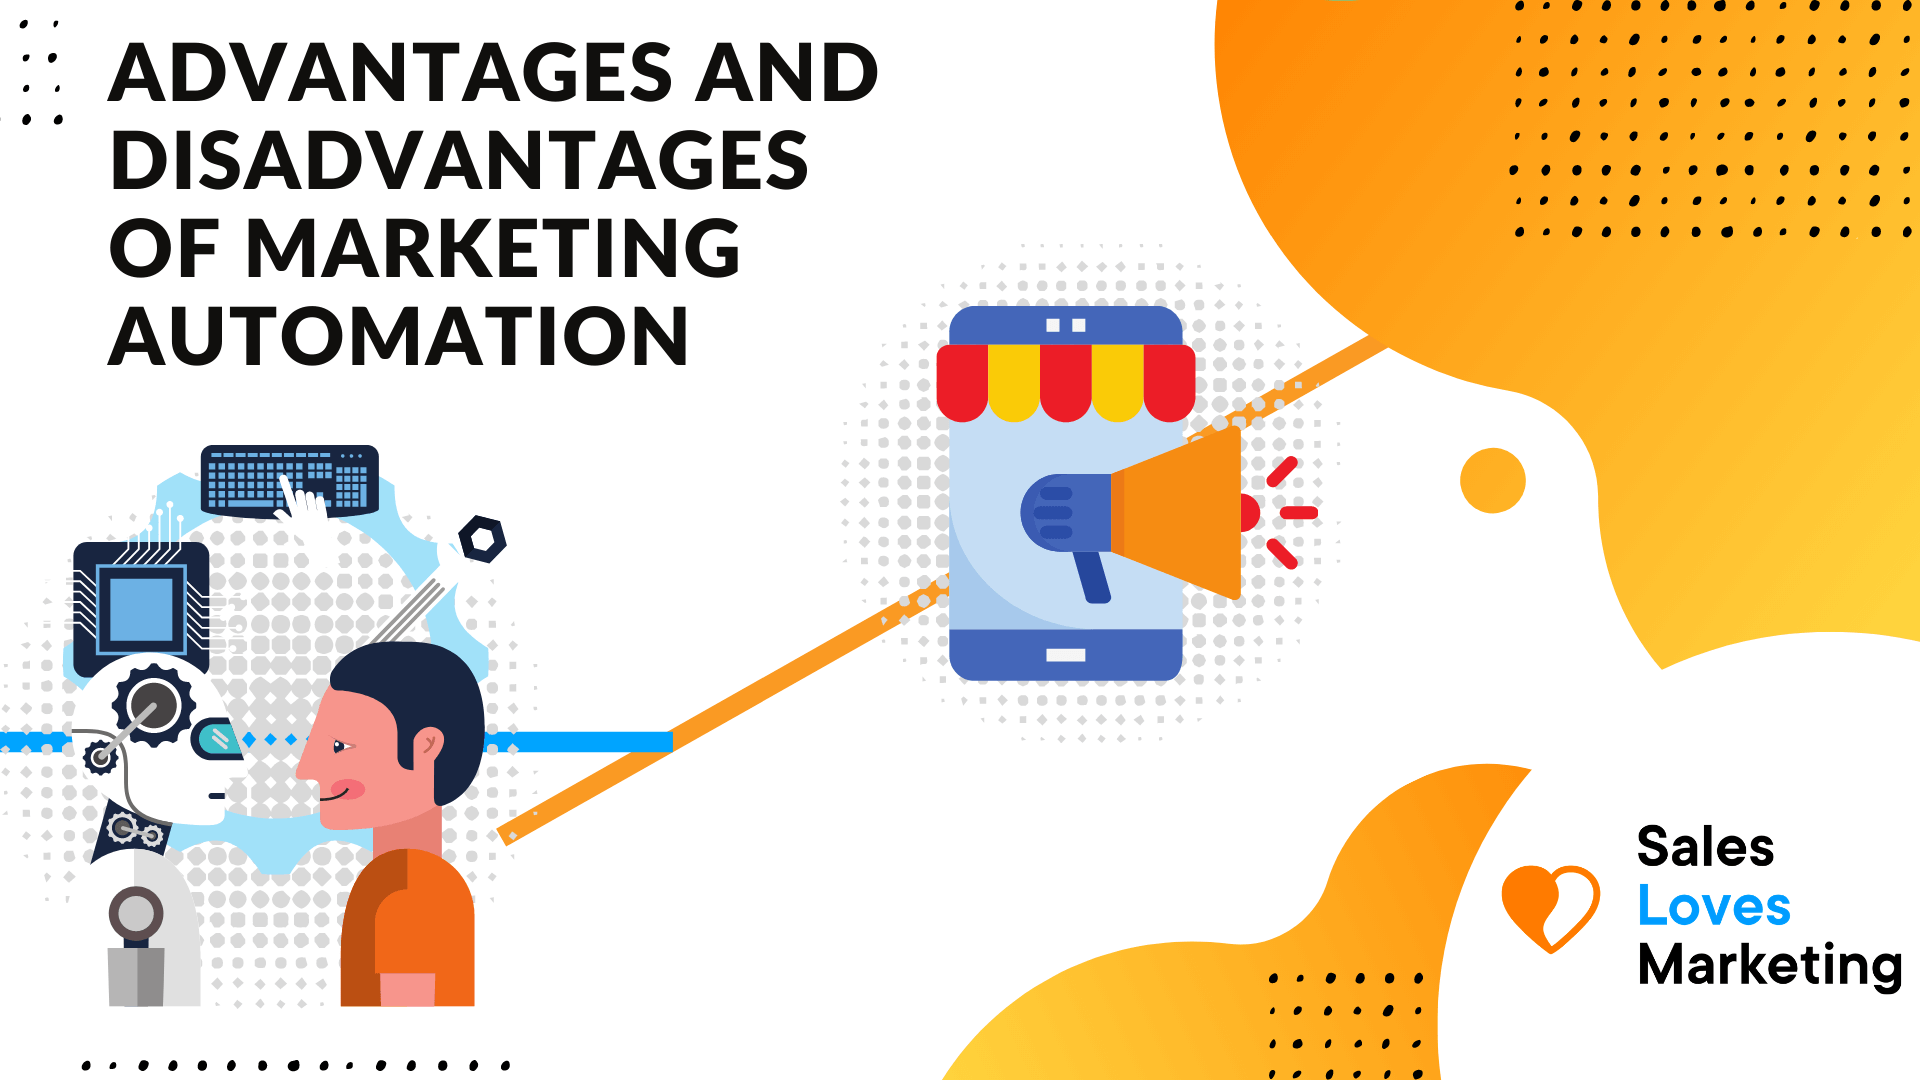 advantages and disadvantages of marketing automation explained